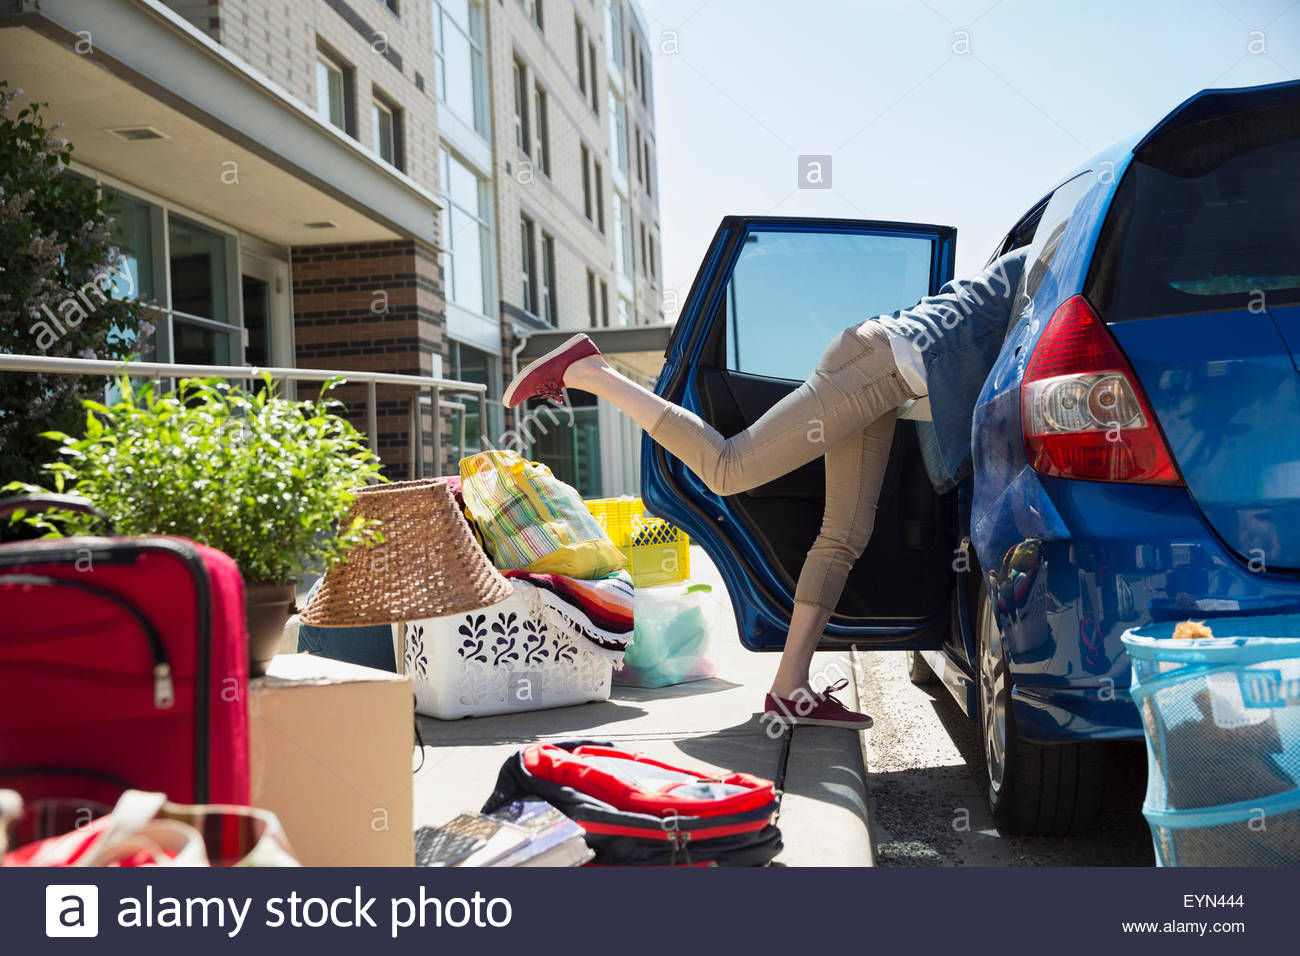 College student reaching in car moving into dorm - Stock Image